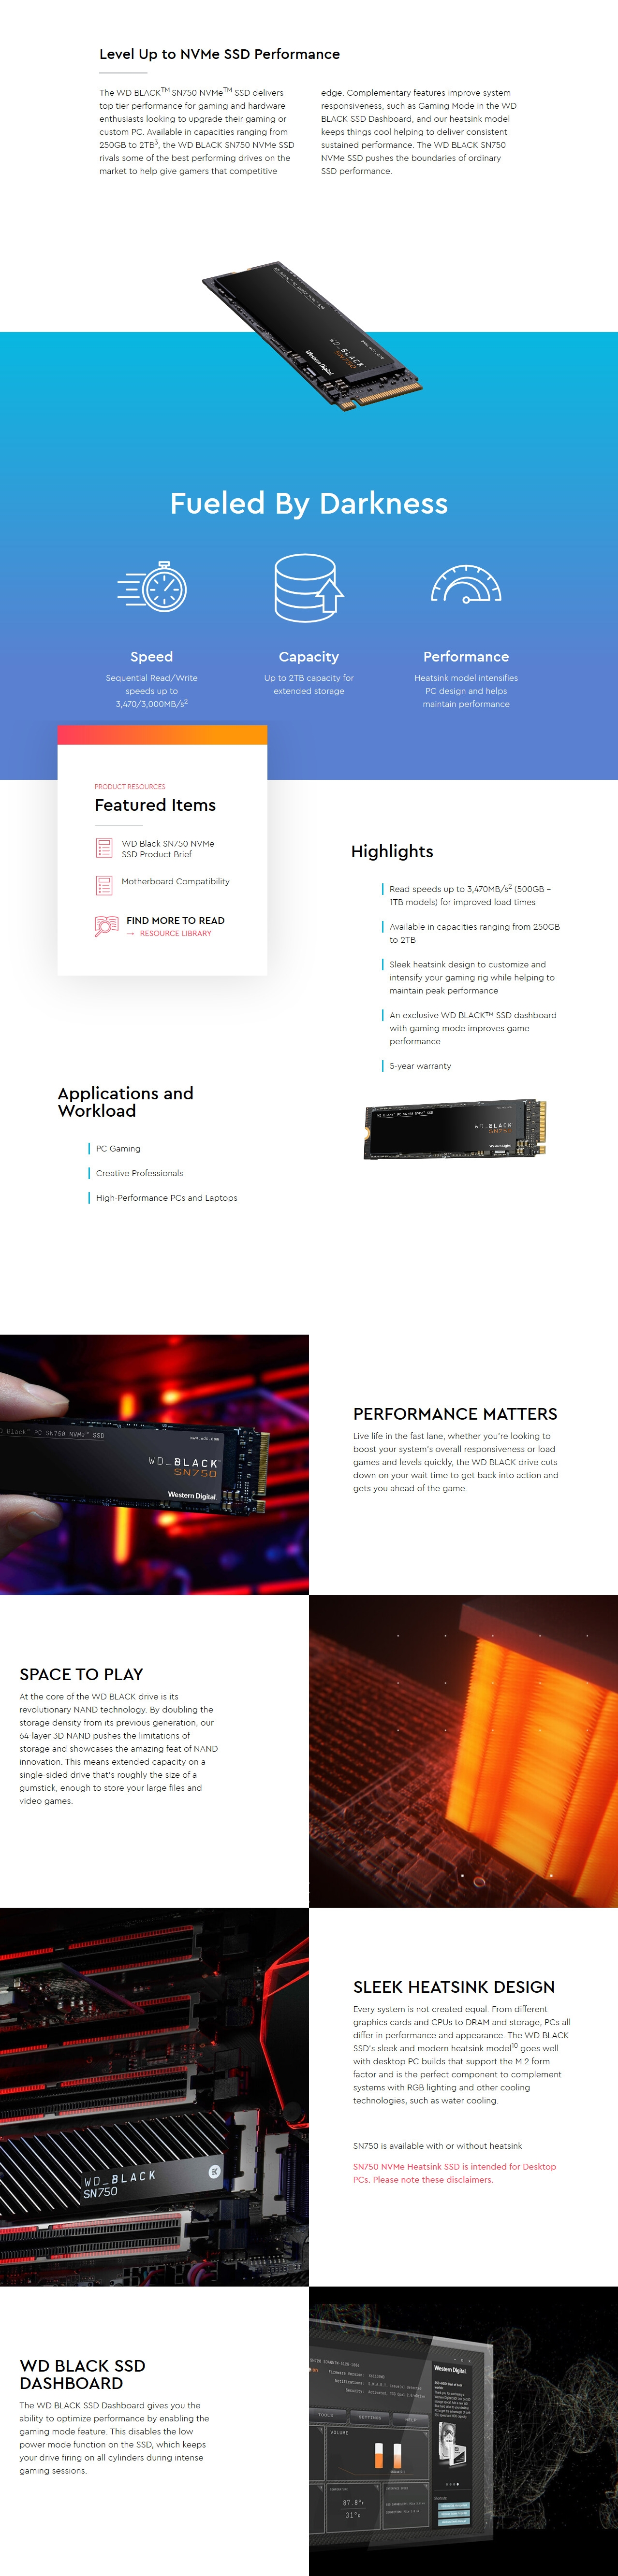 A large marketing image providing additional information about the product WD Black SN750 500GB 3D NAND NVMe M.2 SSD w/Heatsink - Additional alt info not provided